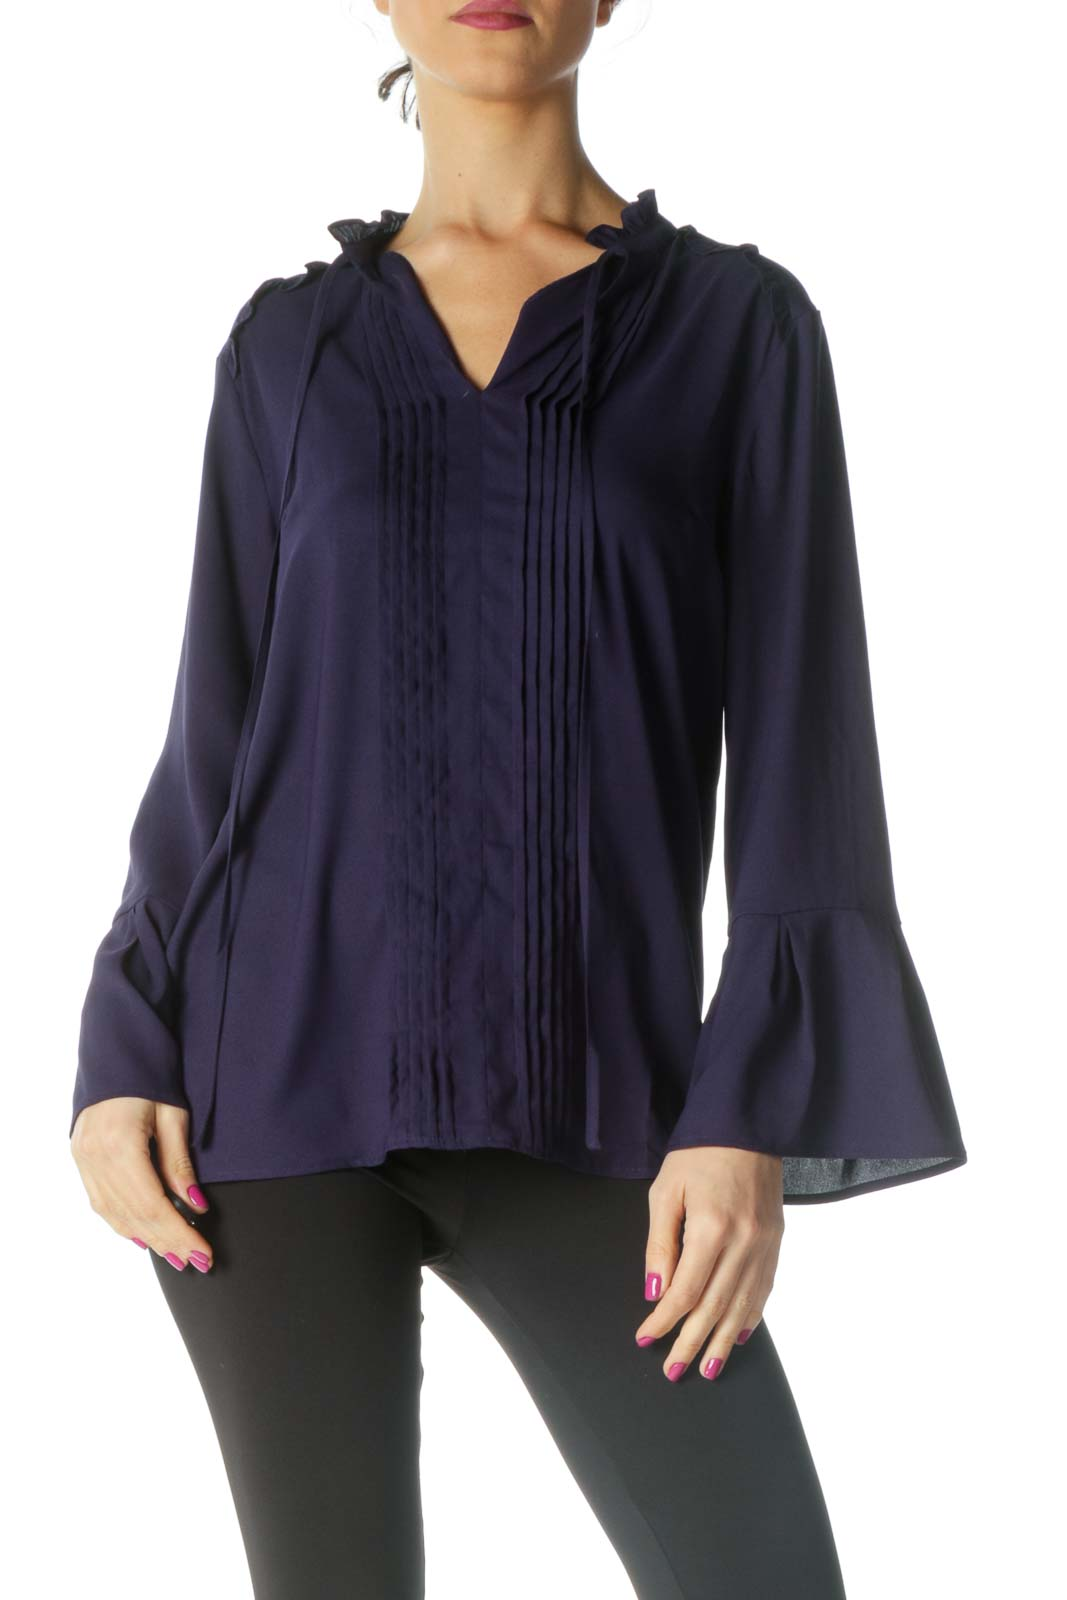 Blue Solid Formal Blouse Front